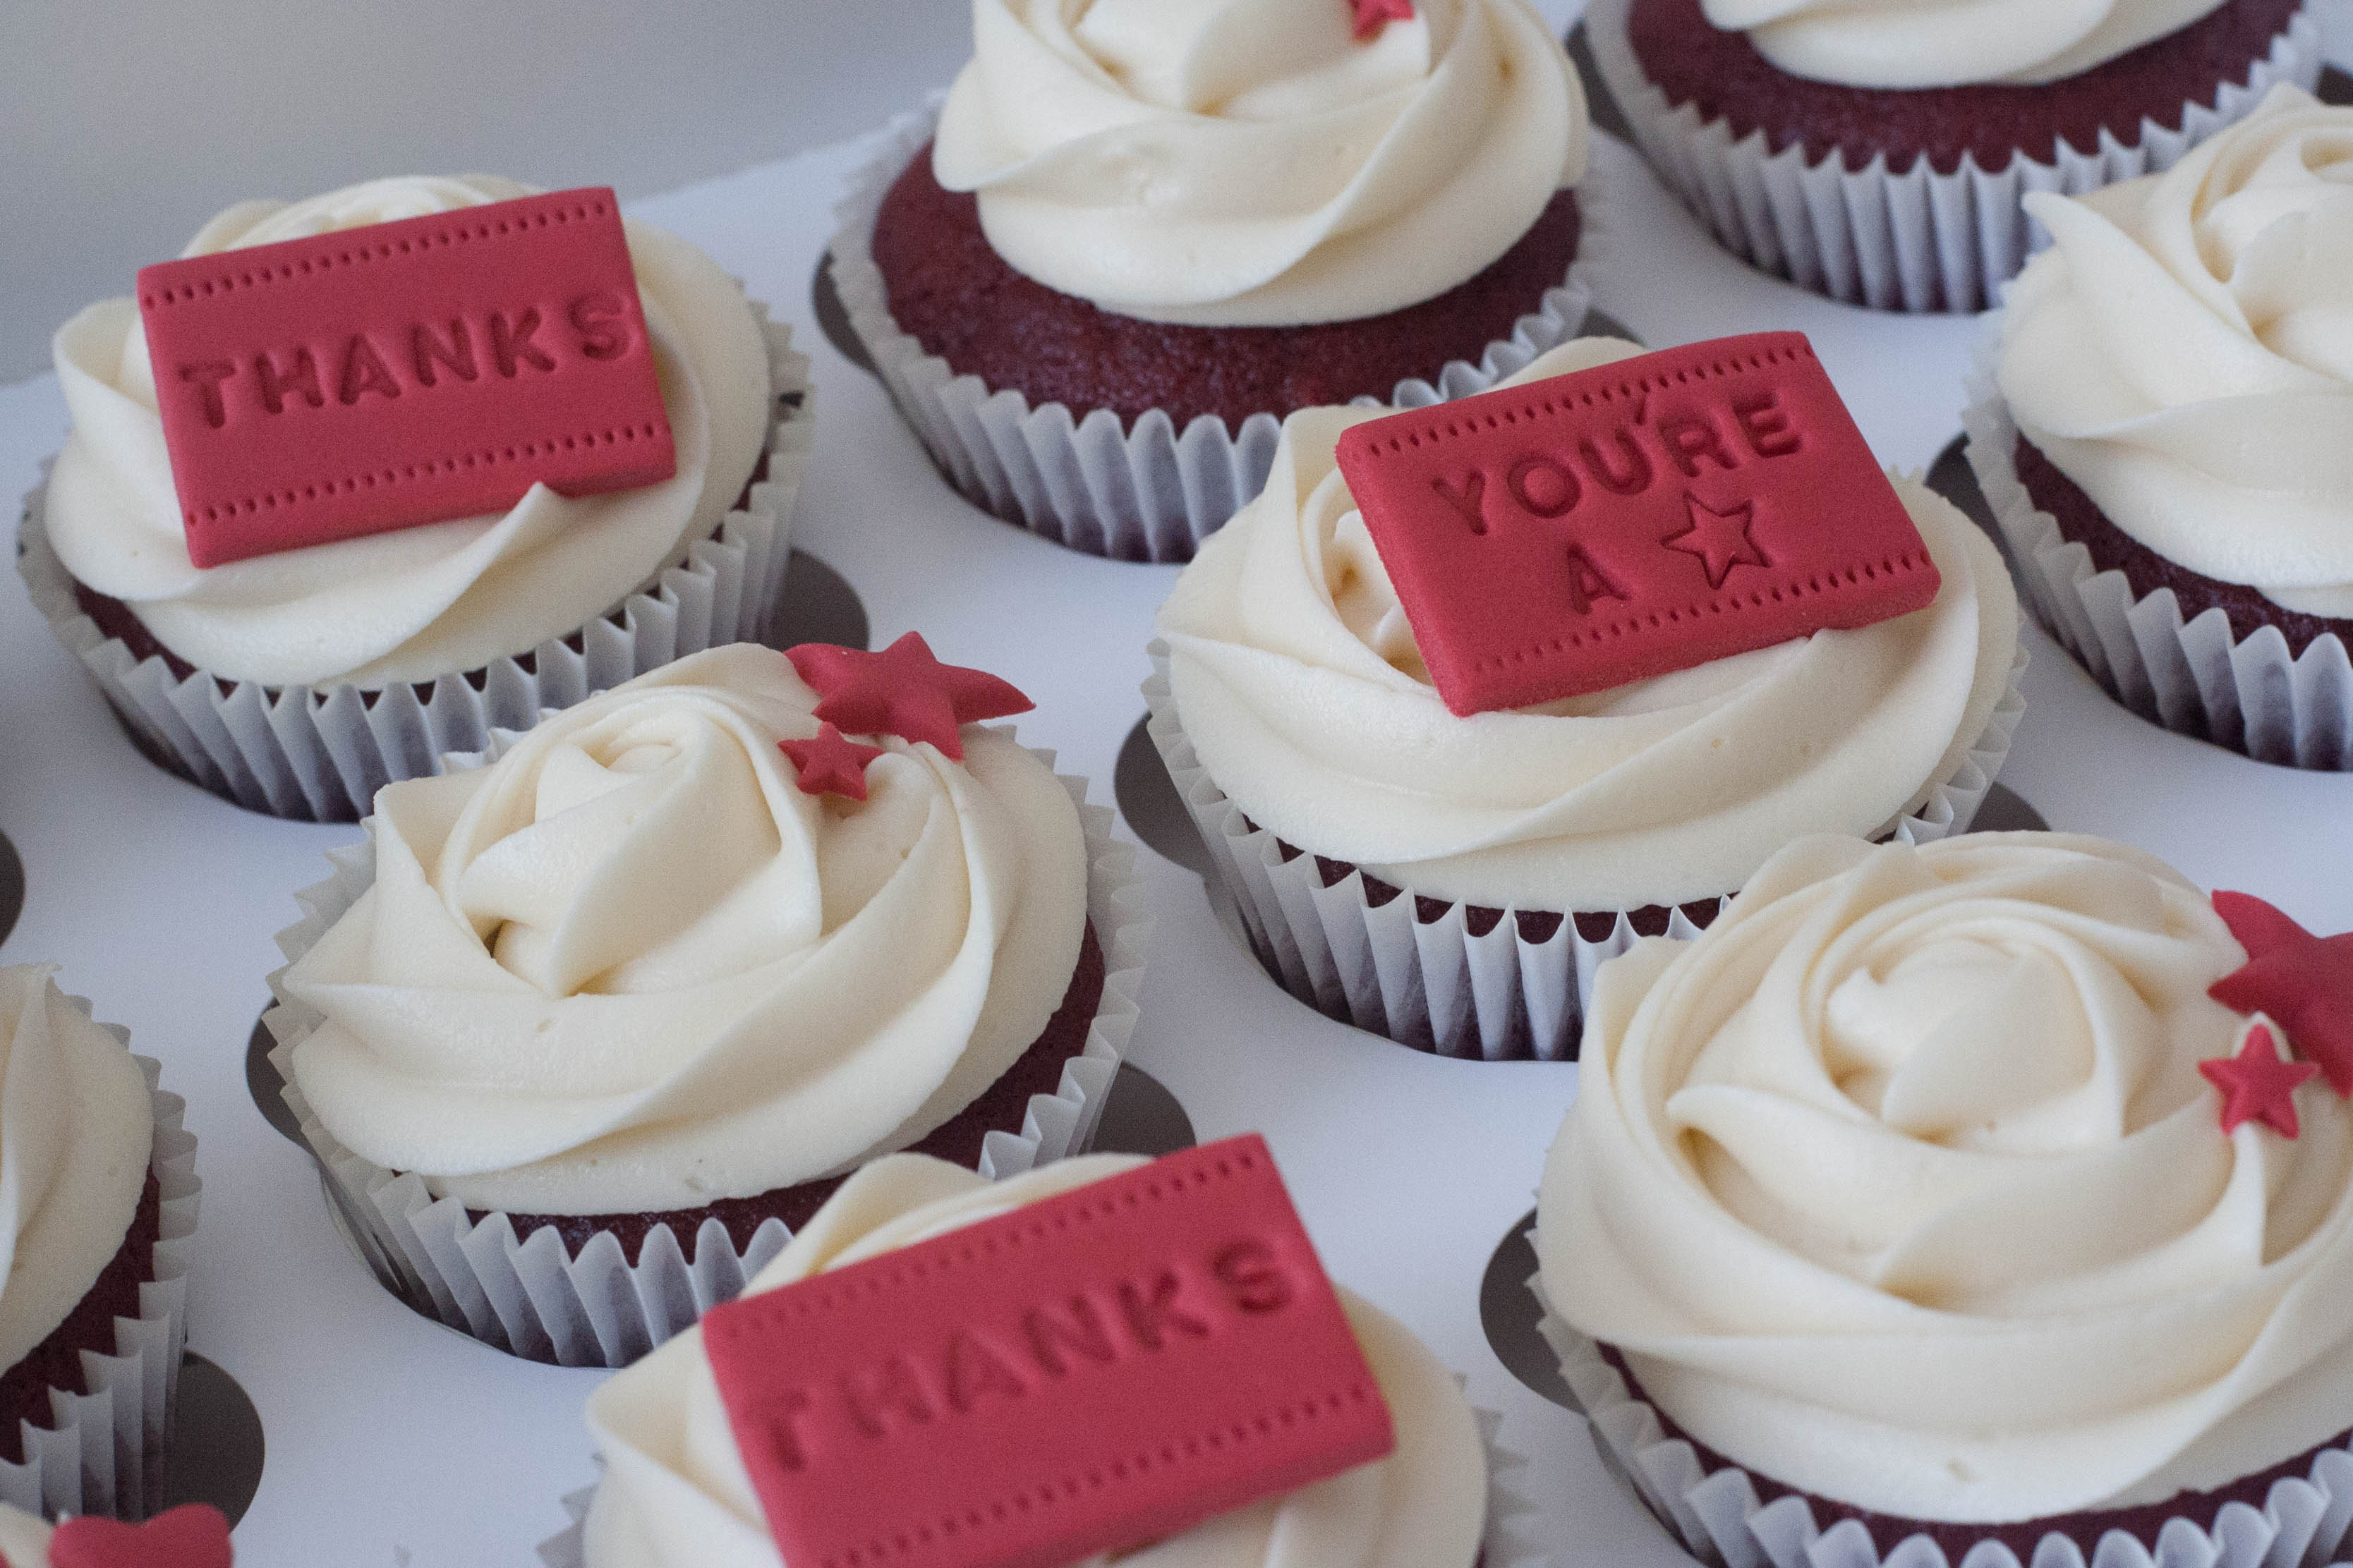 red velvet thank you cupcakes